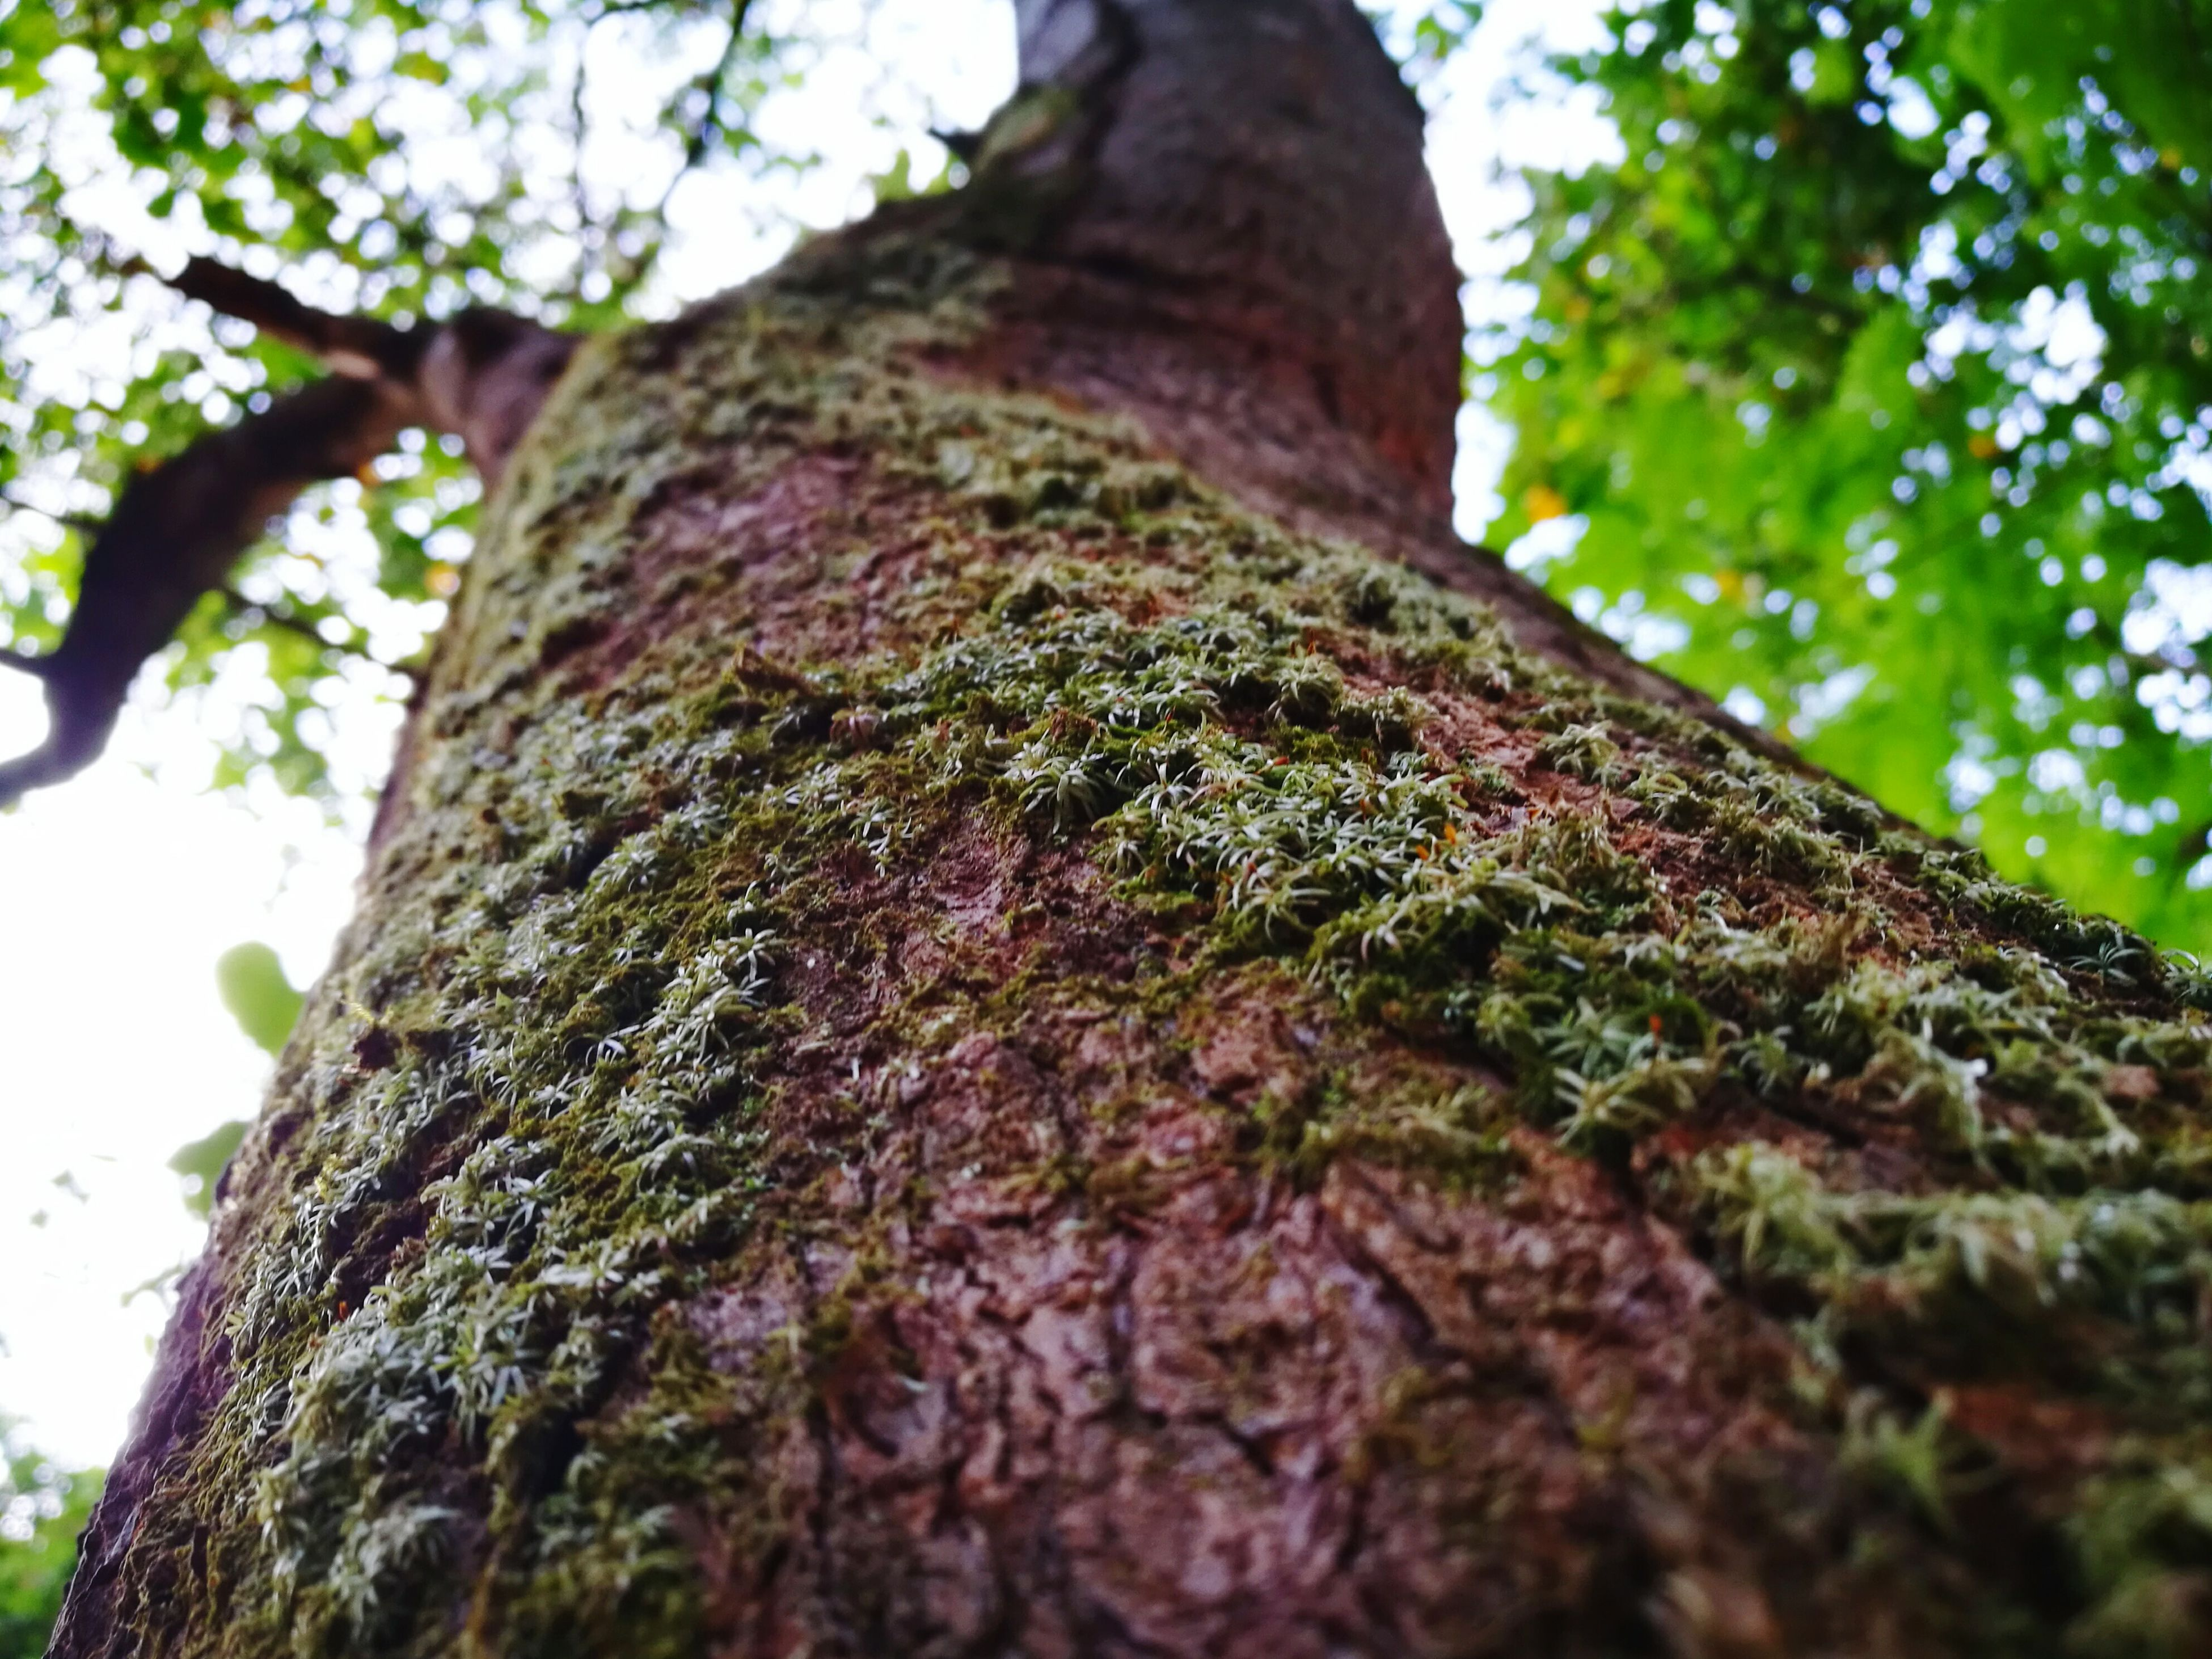 tree, tree trunk, nature, textured, low angle view, growth, bark, no people, plant bark, outdoors, green color, beauty in nature, day, close-up, branch, trunk, sky, knotted wood, woodpecker